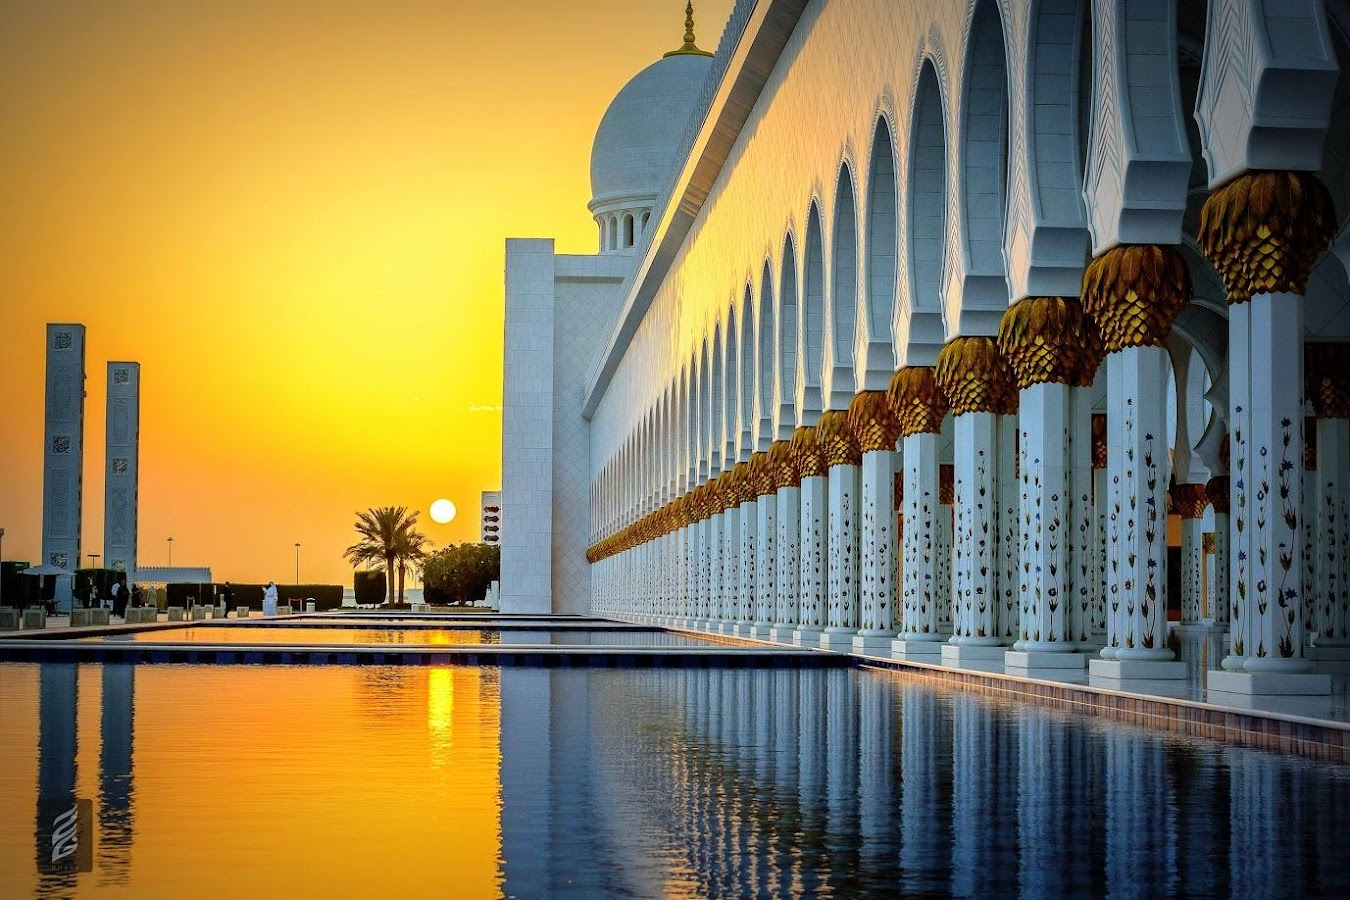 Islamic mosque wallpapers android apps on google play for Home wallpaper uae